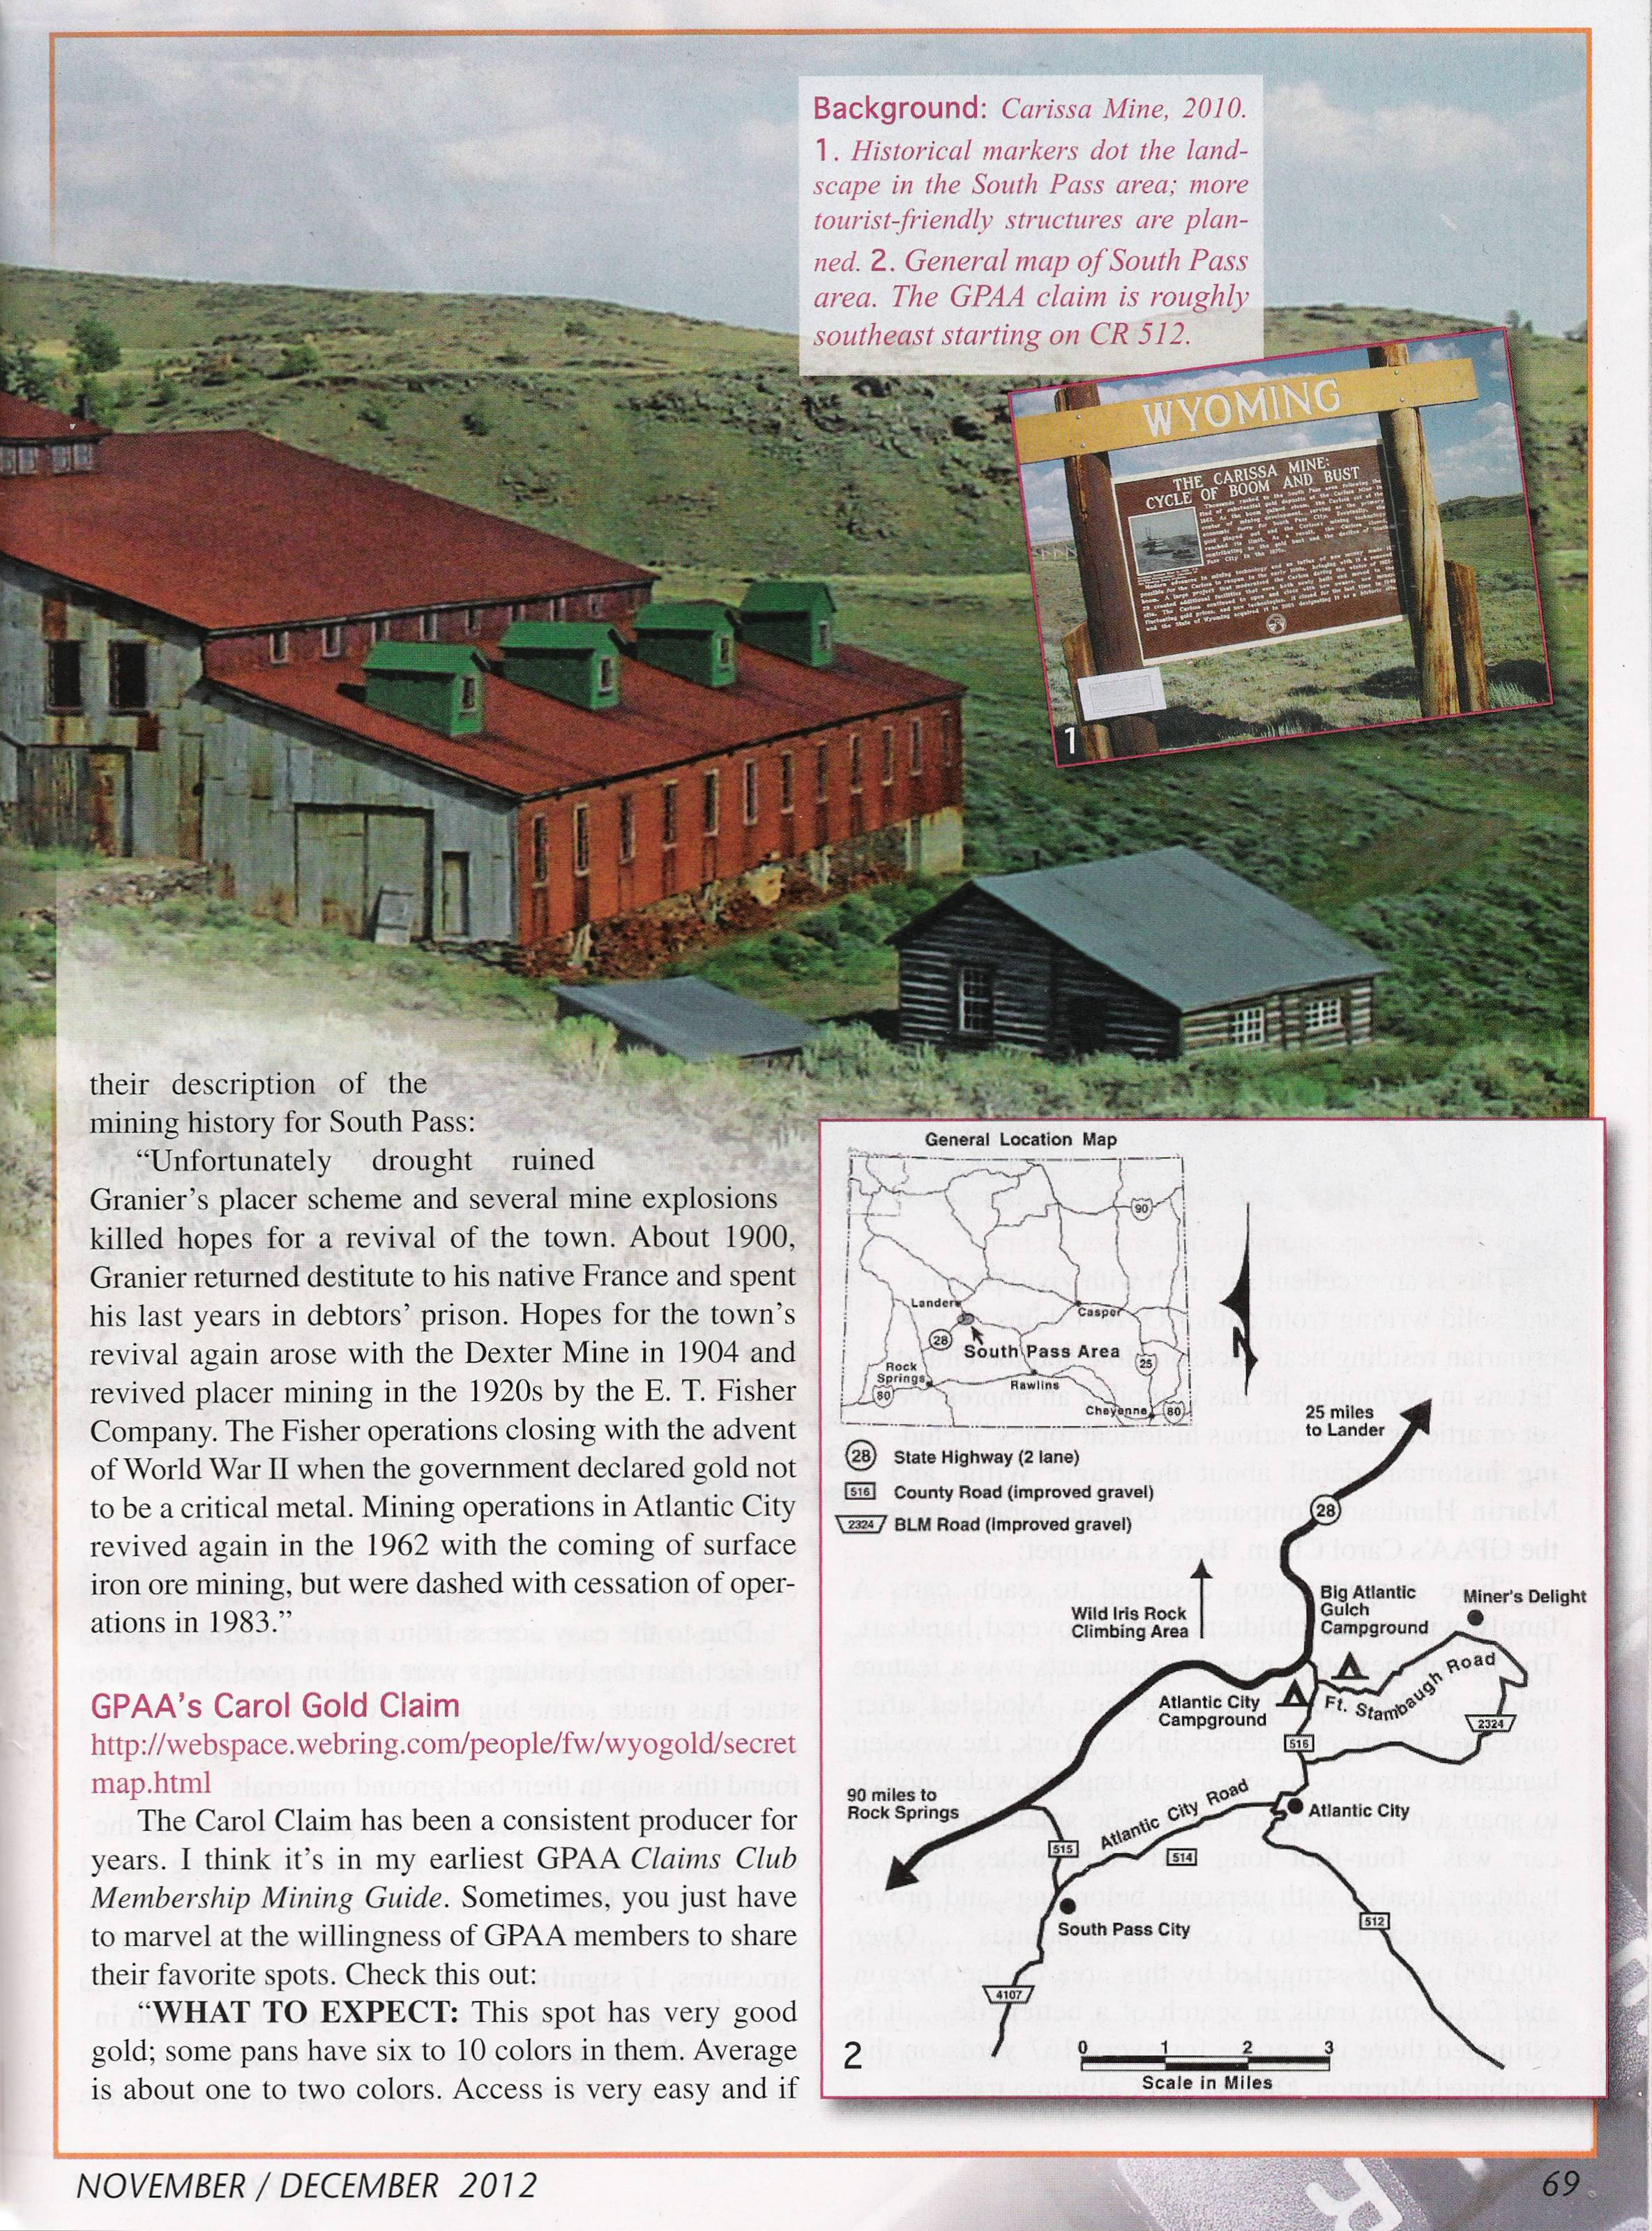 Explore the Carissa Mine through the Nov./Dec. 2011 issue of Gold Prospectors.